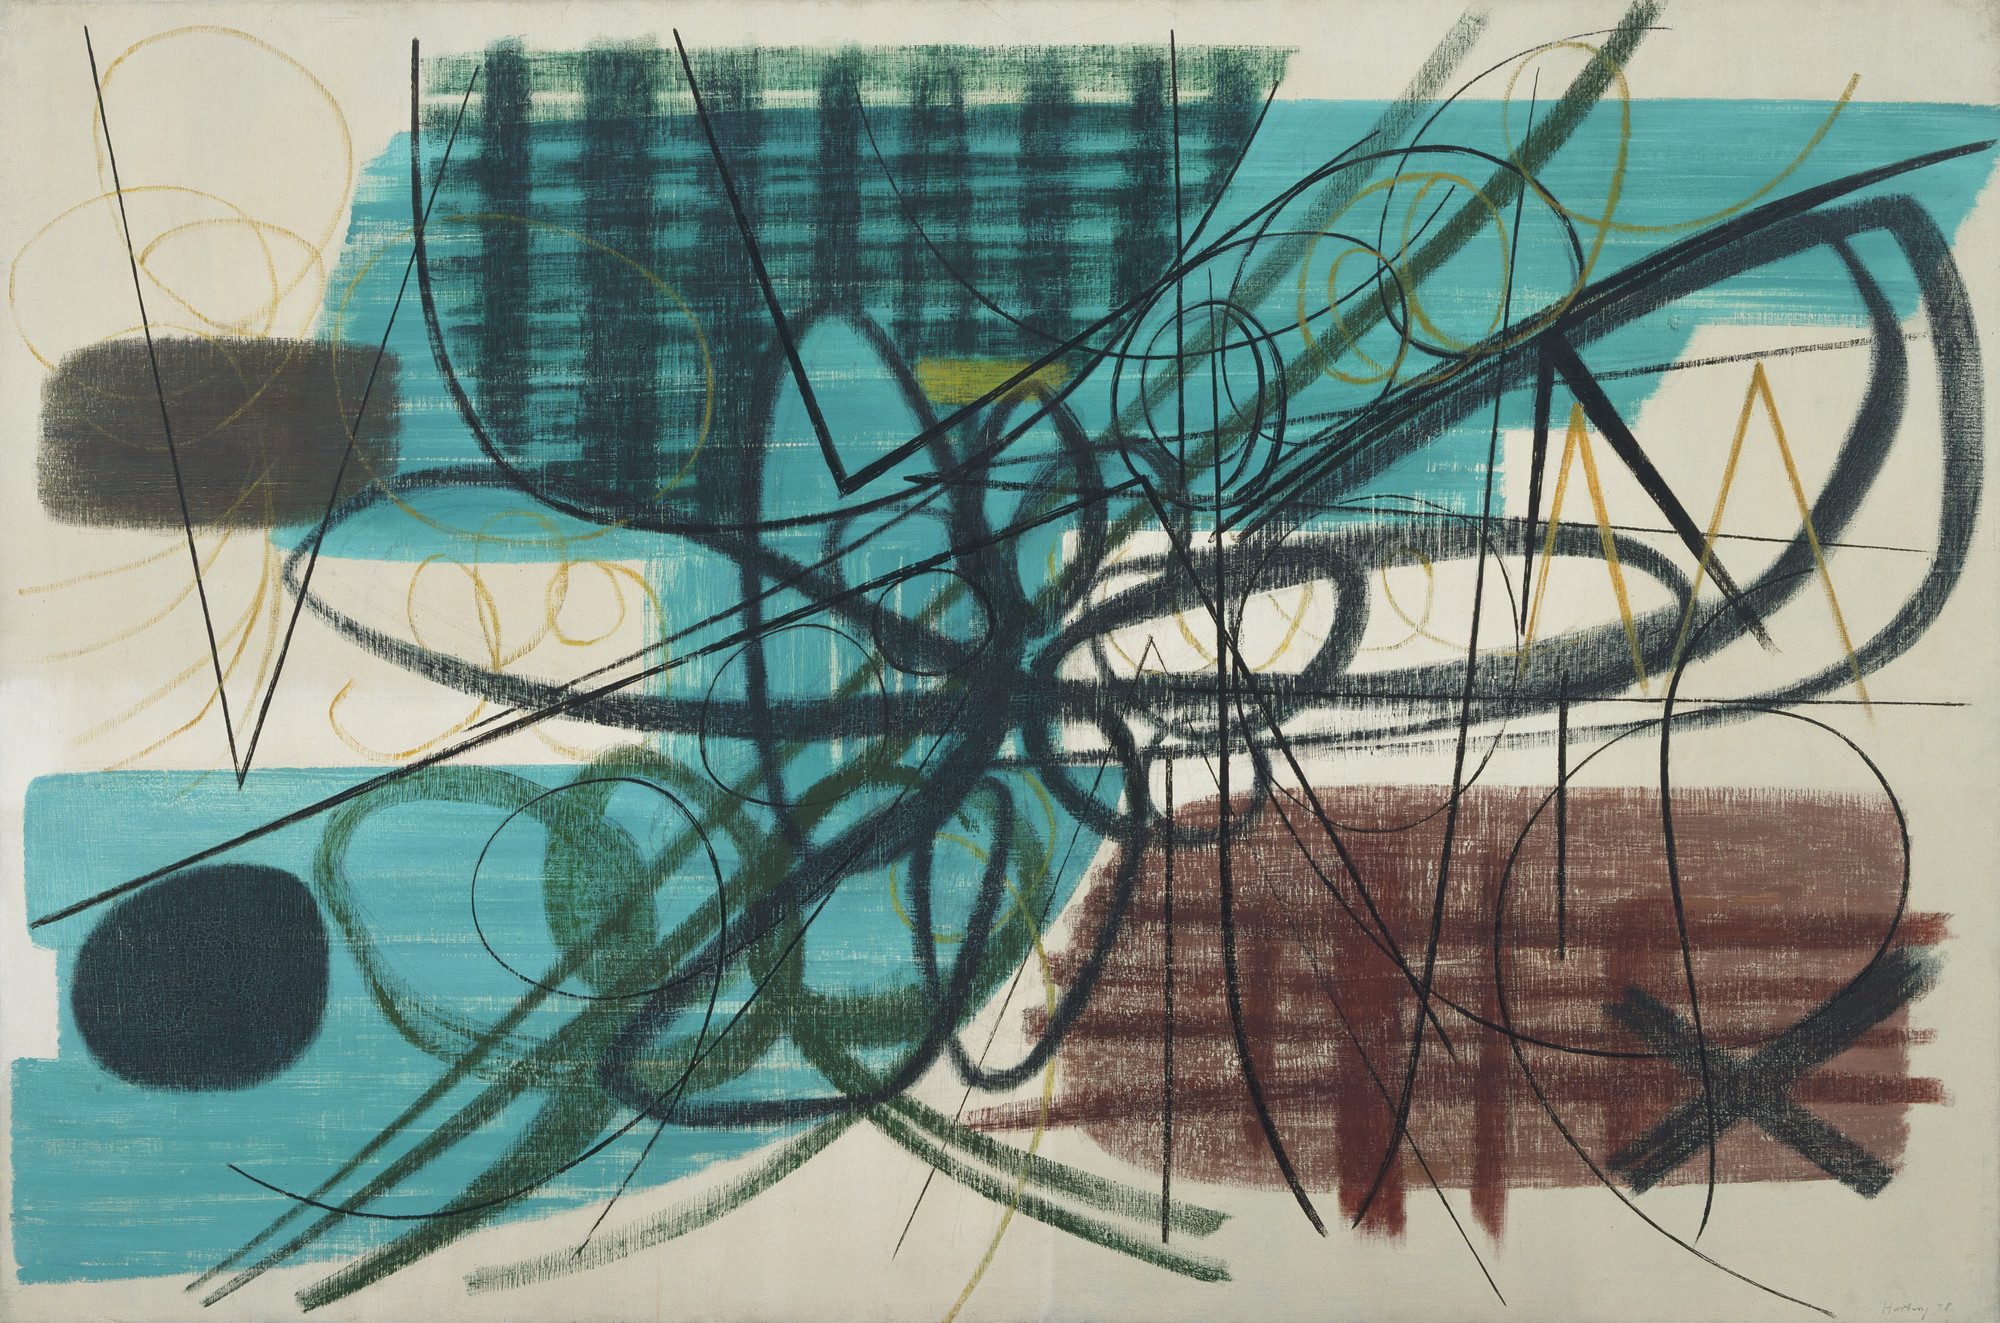 Hans Hartung. Painting. 1948